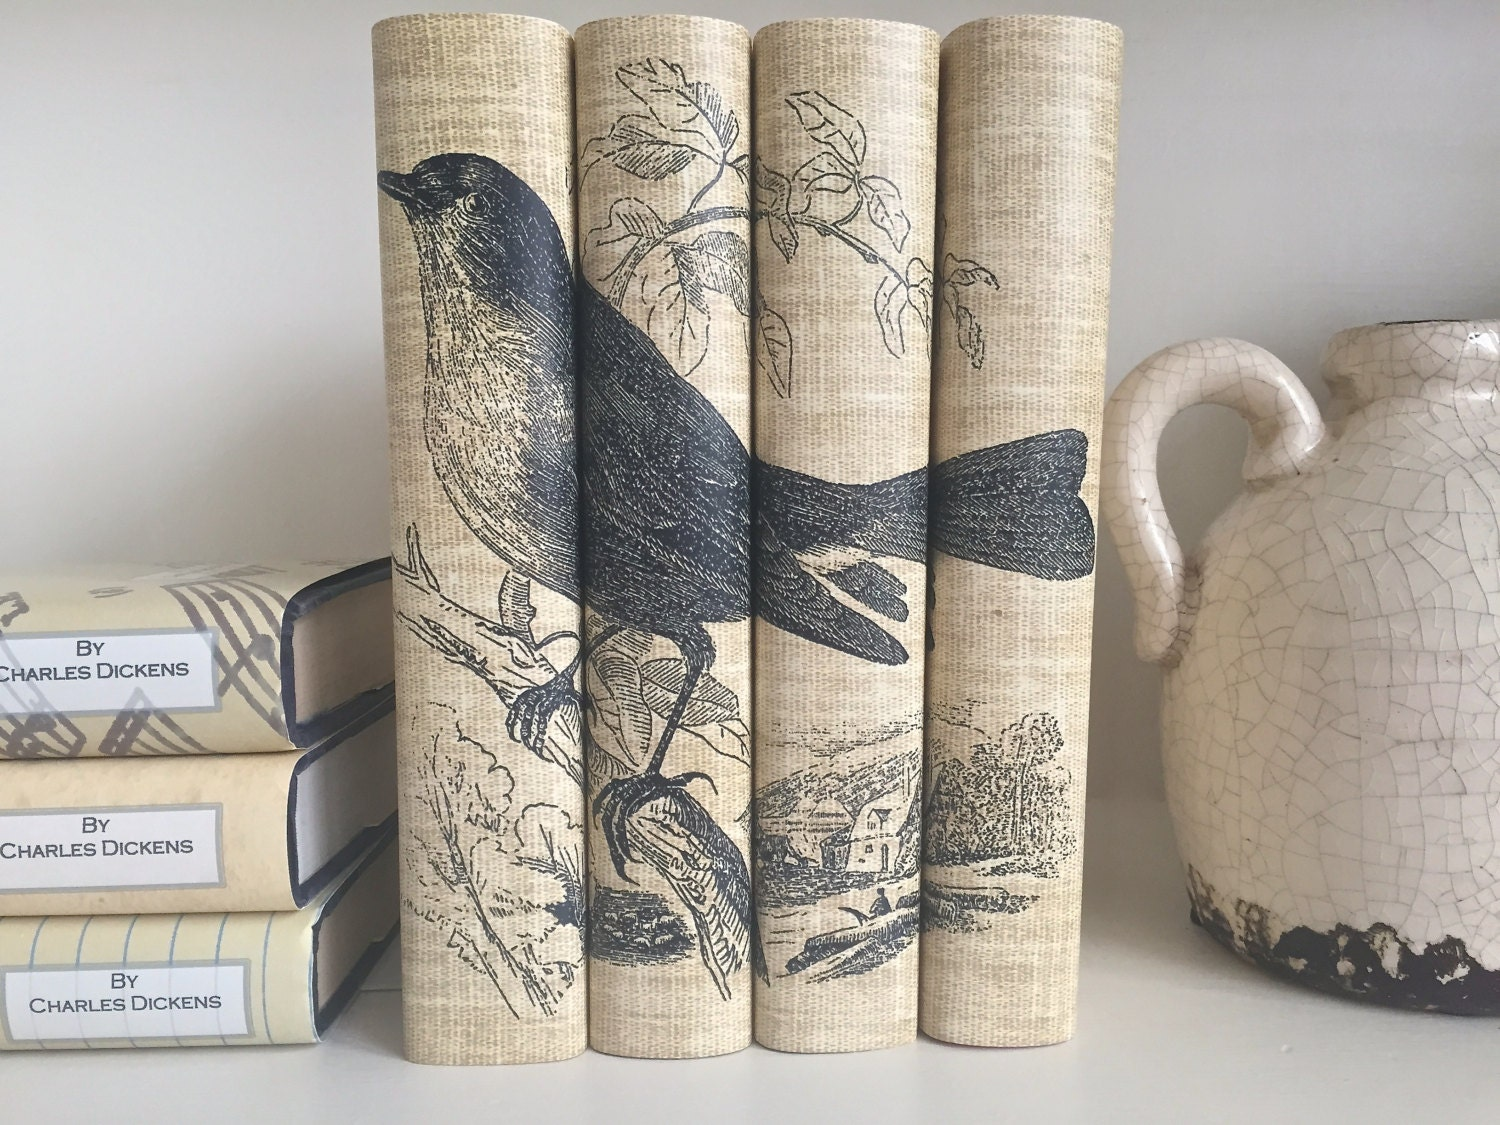 Uncategorized Book Decor decorative books with bird book covers neutral color bird